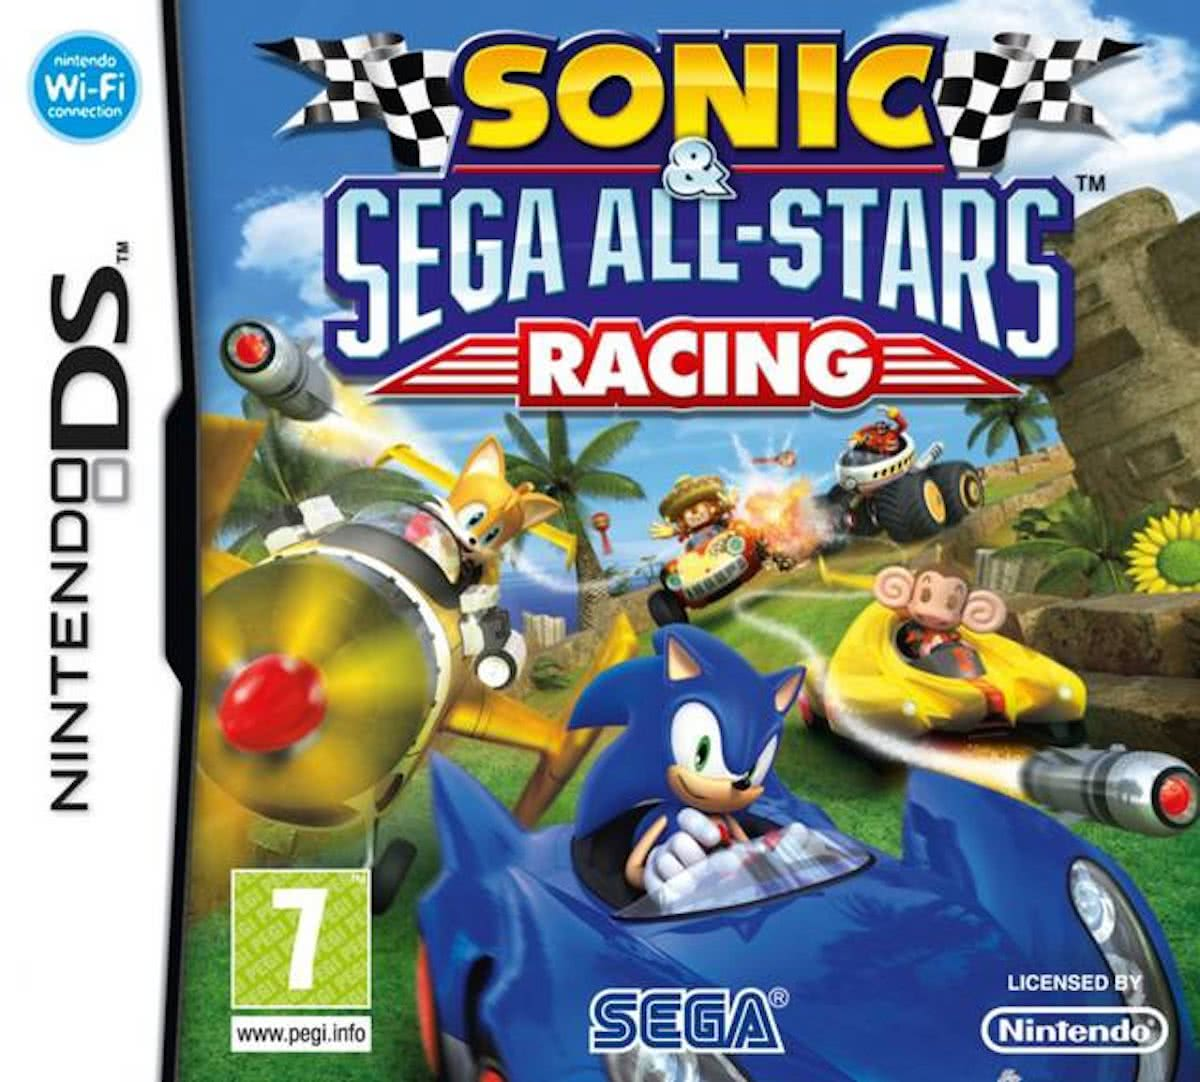 Sonic & SEGA All-Stars Racing /NDS